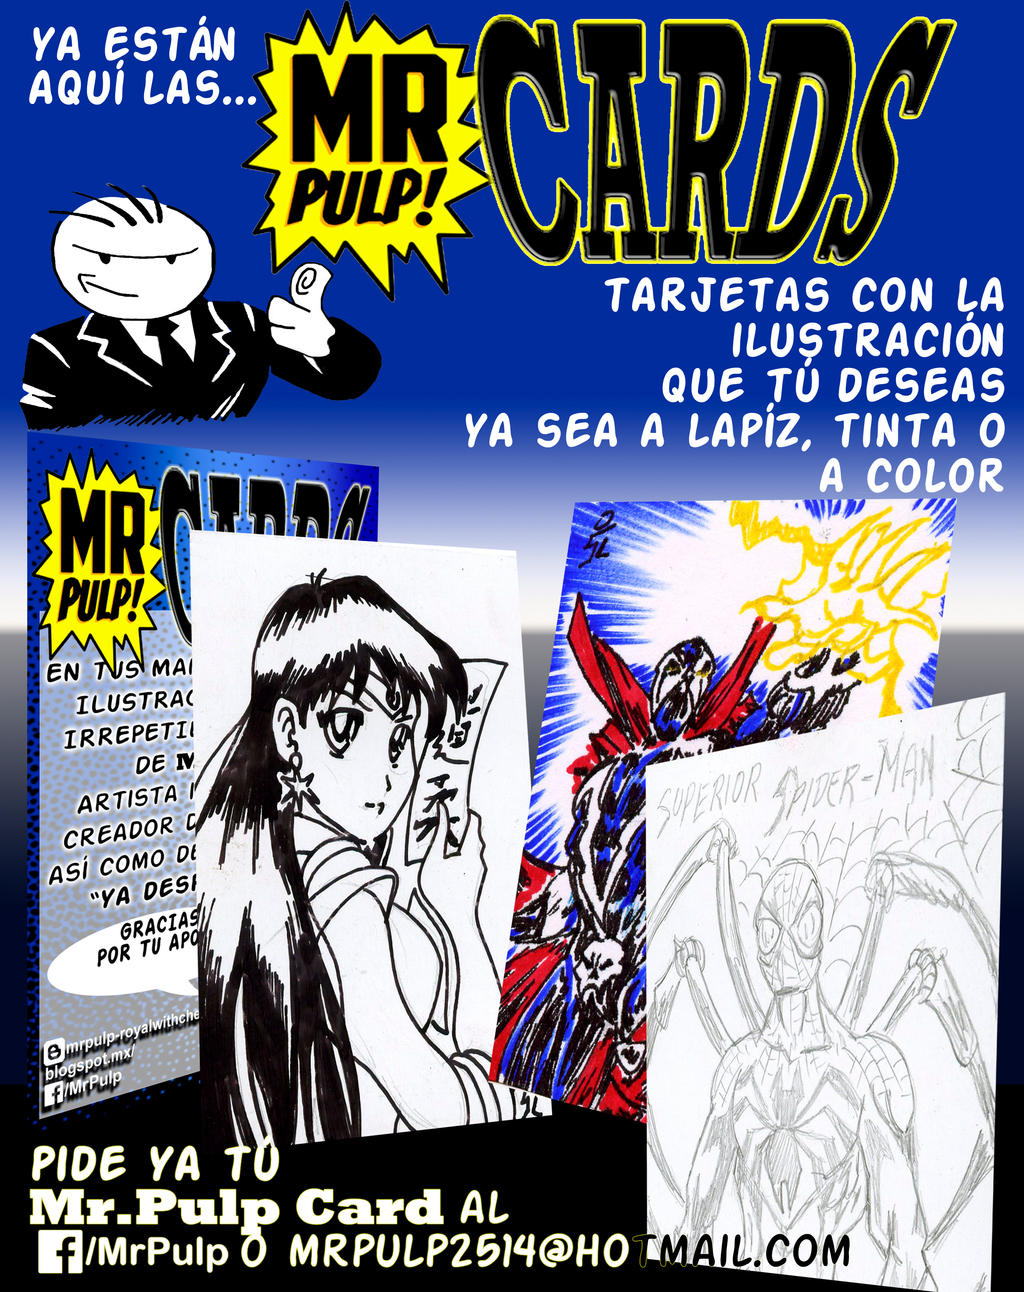 Mr.Pulp CARDS by mrpulp-presenta